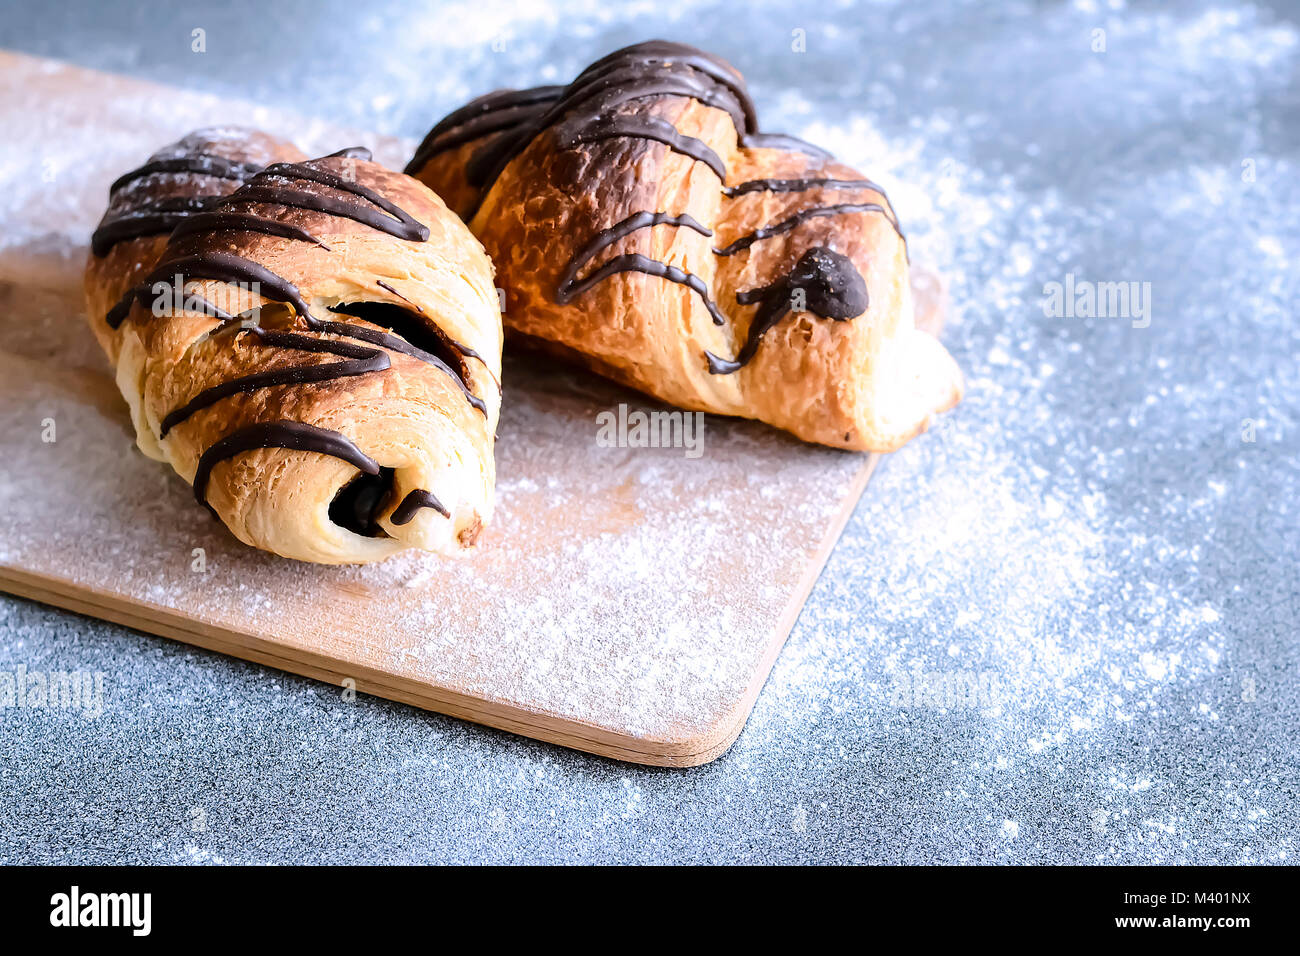 Fresh croissants with chocolate on the table. Delicious Breakfas - Stock Image